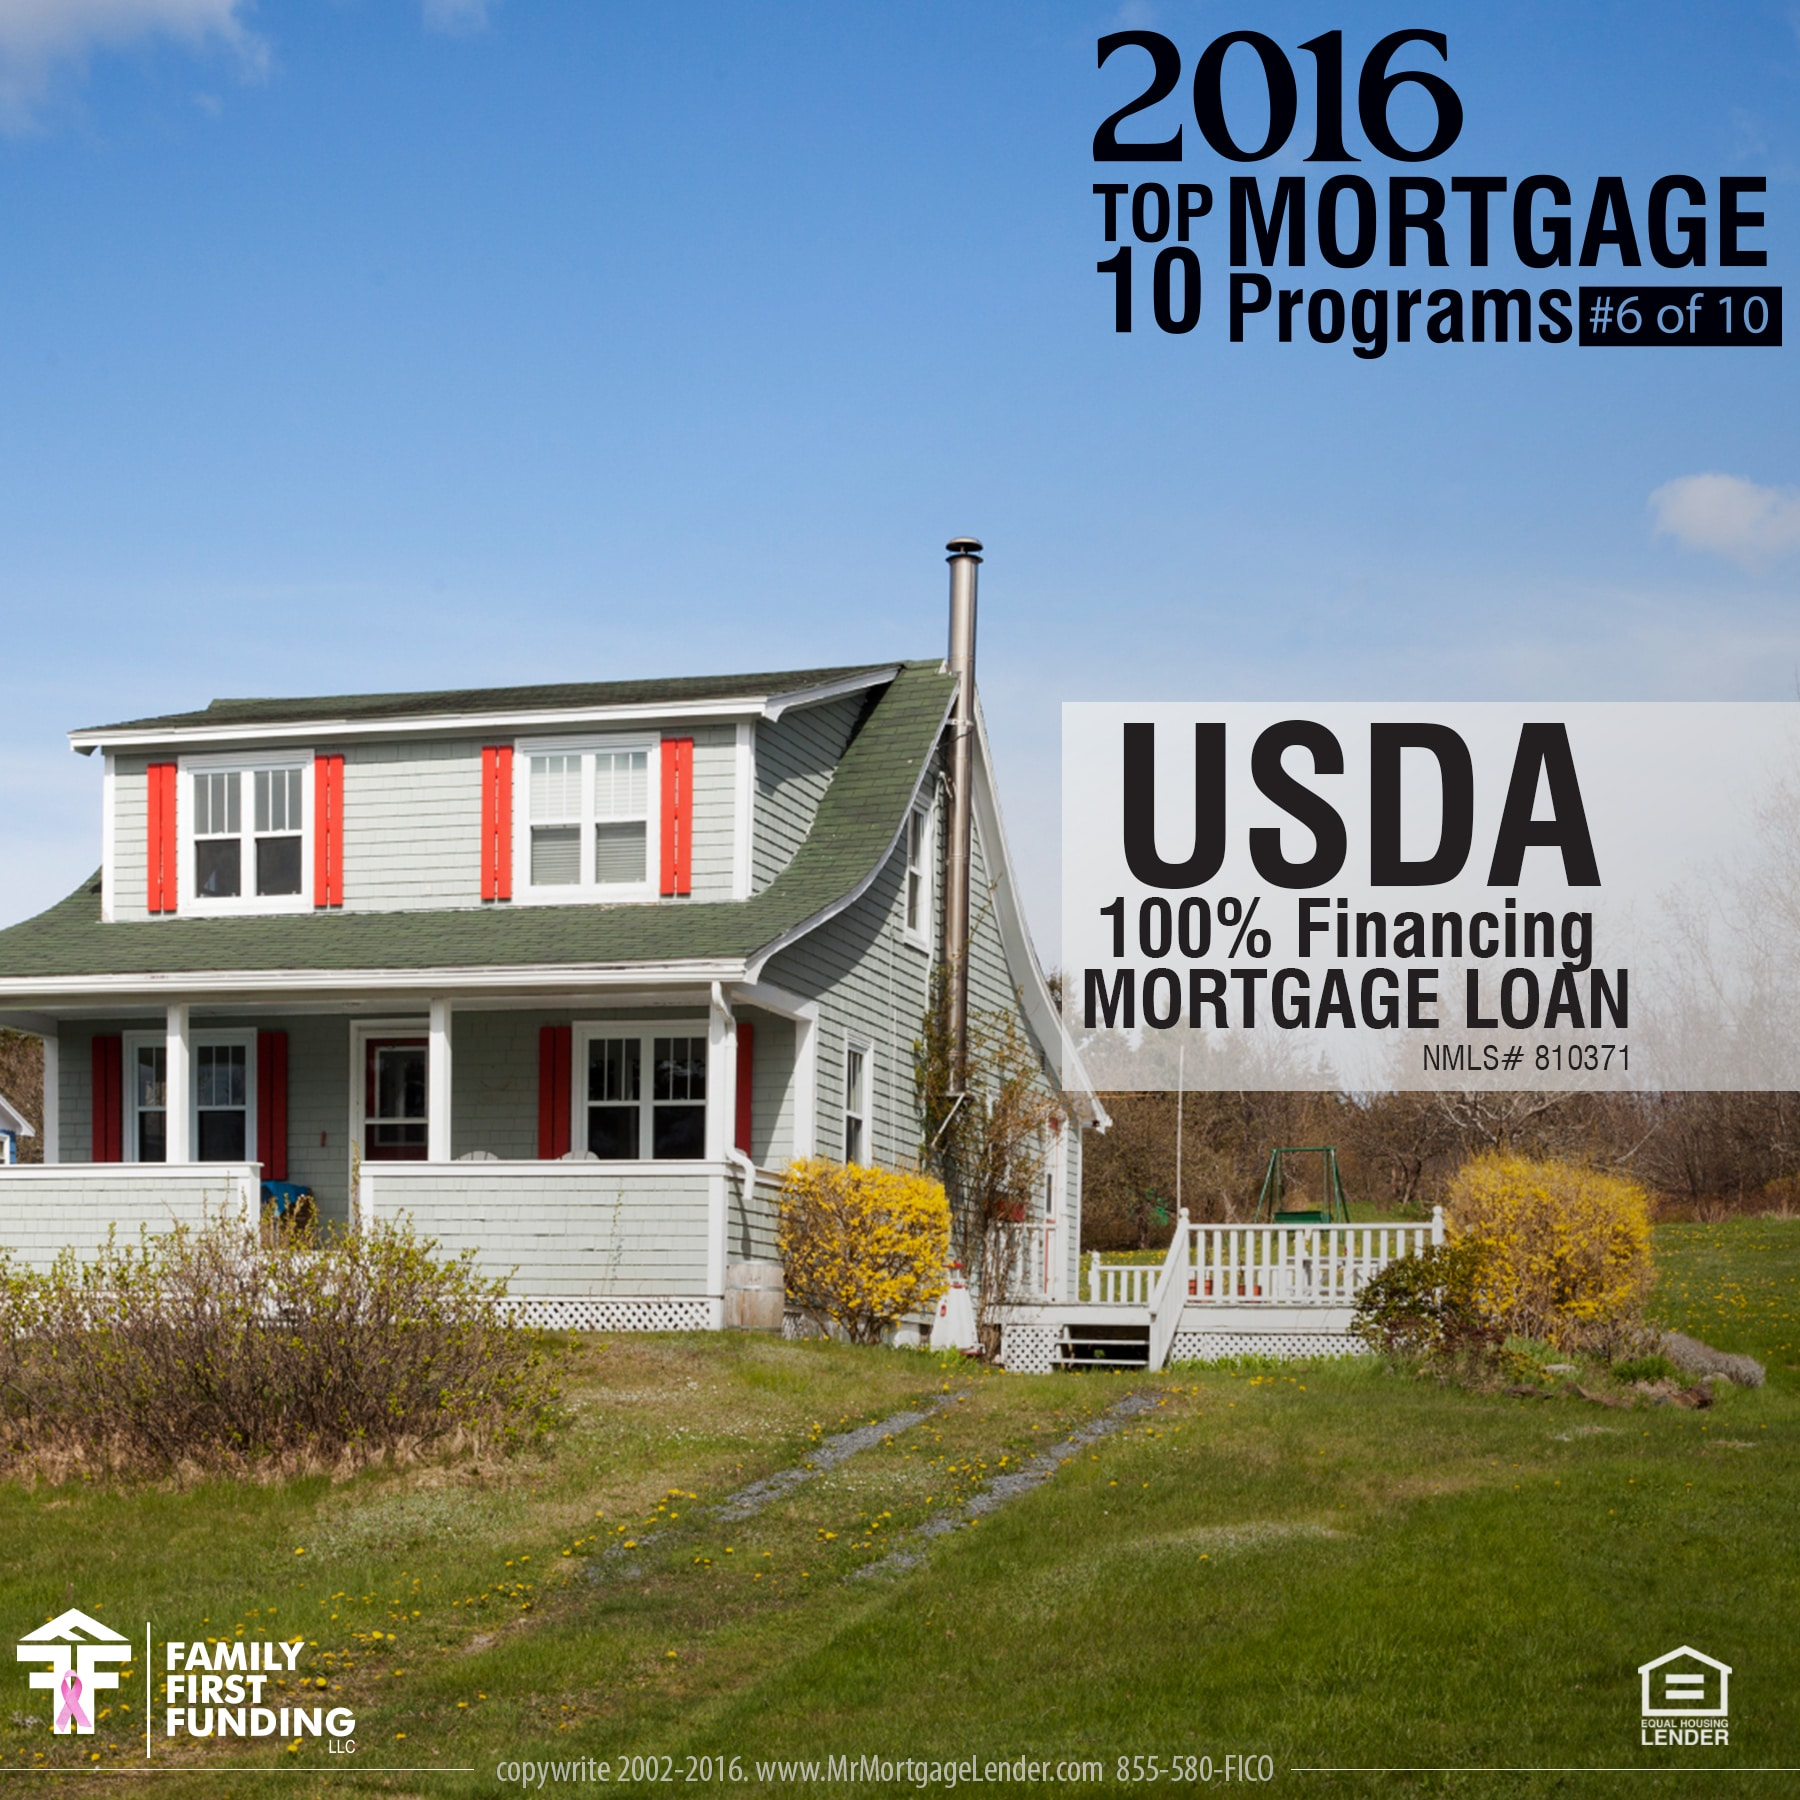 6. USDA 100 Financing Mortgage Loan